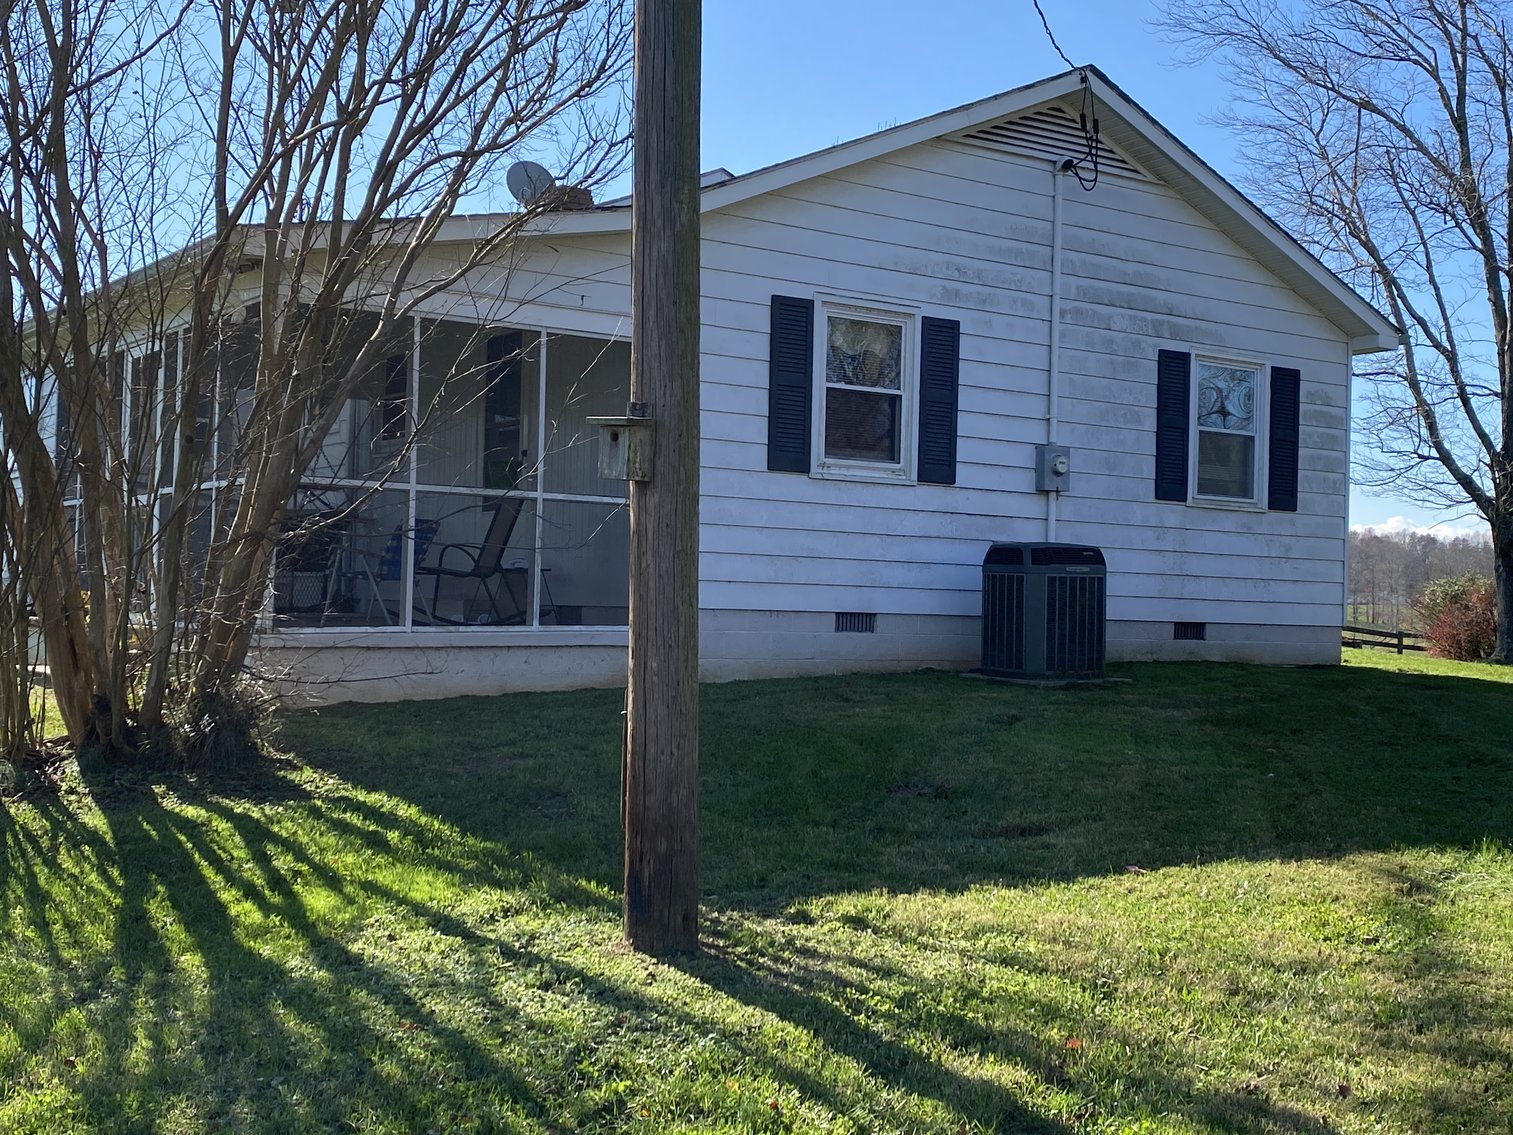 Image for 3 BR/2 BA Home w/Detached 2 Bay Shop/Garage on 2.2 +/- Acres in Madison County, VA--SELLING to the HIGHEST BIDDER!!